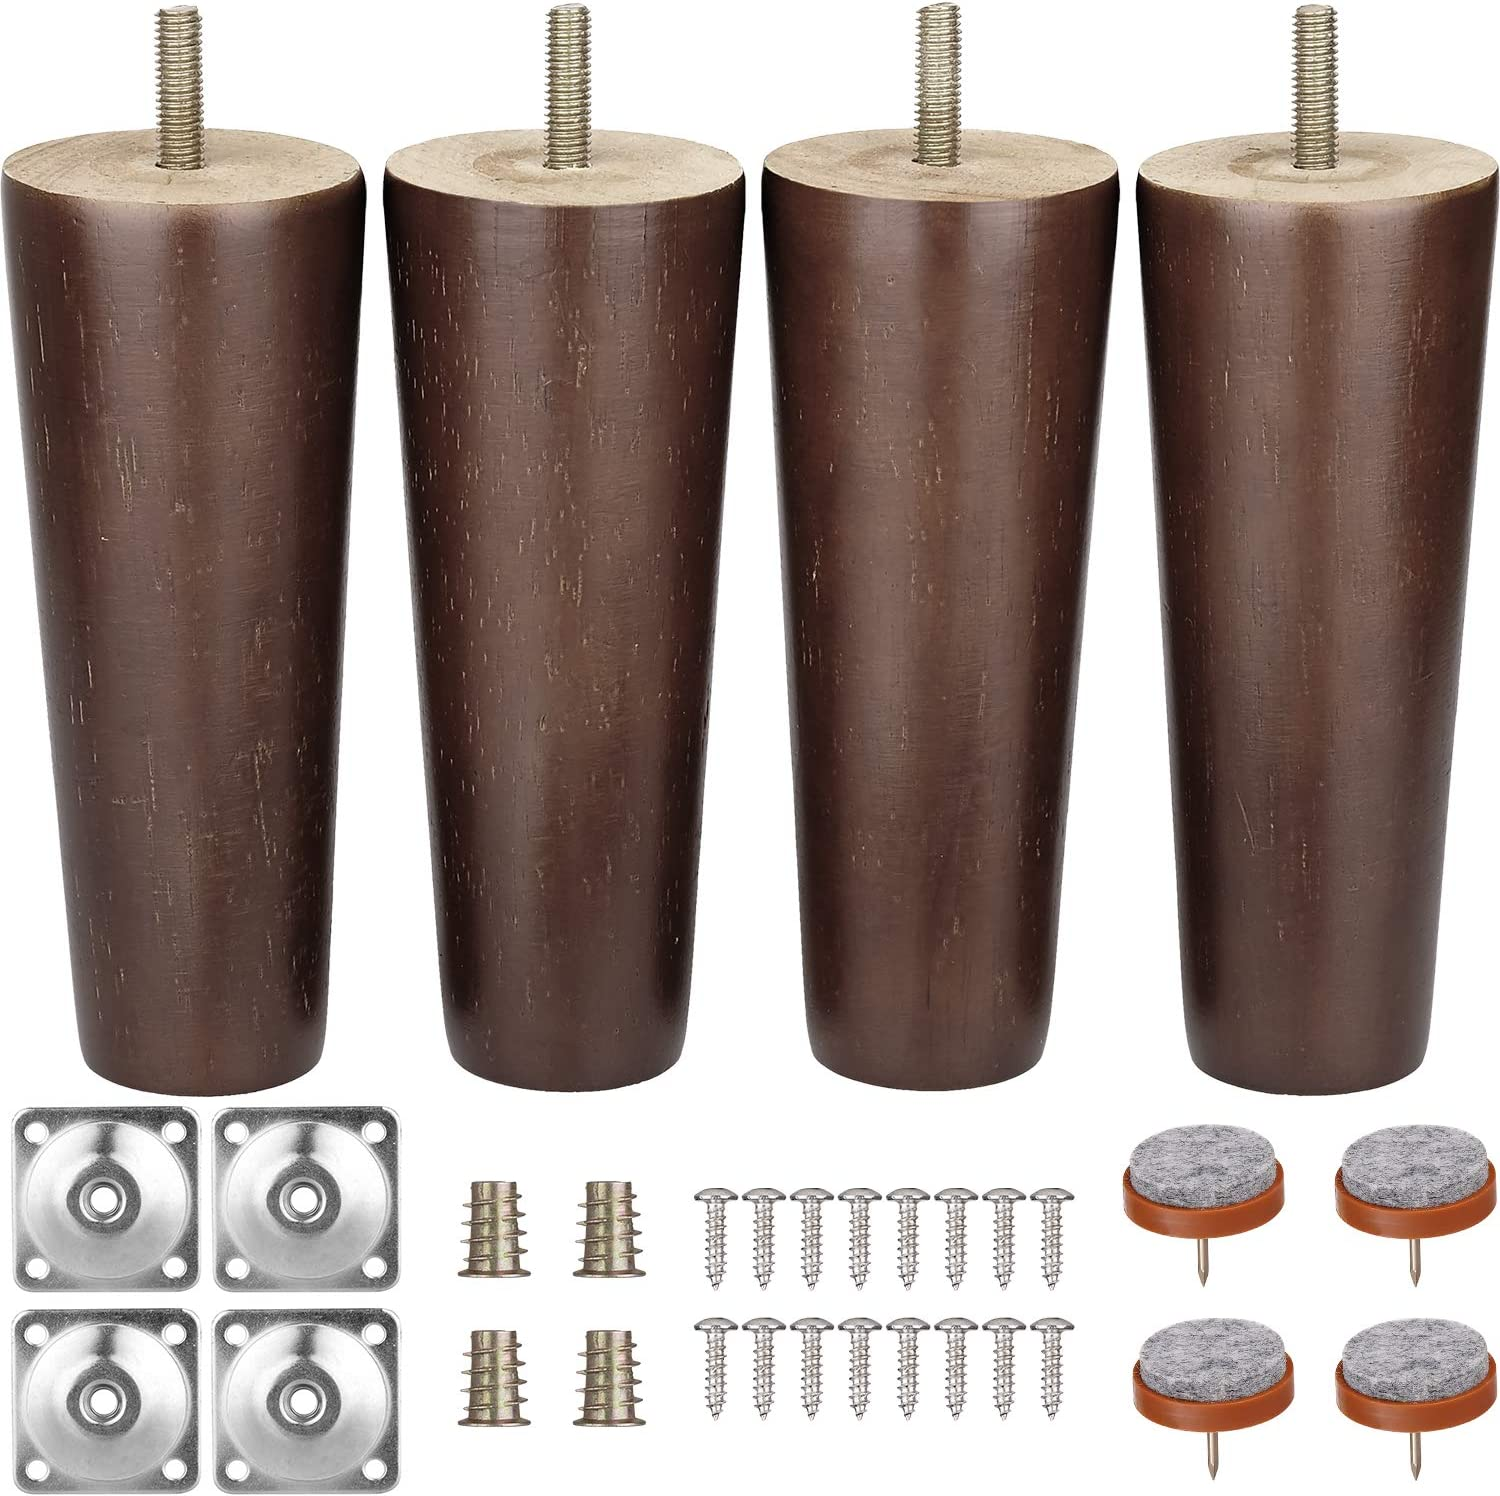 Furniture Legs 8 Inches Sofa Legs Mid Century Modern Walnut Wood Furniture  Feet Replacement Legs with Leg Mounting Plates & Felt Protectors for Sofa